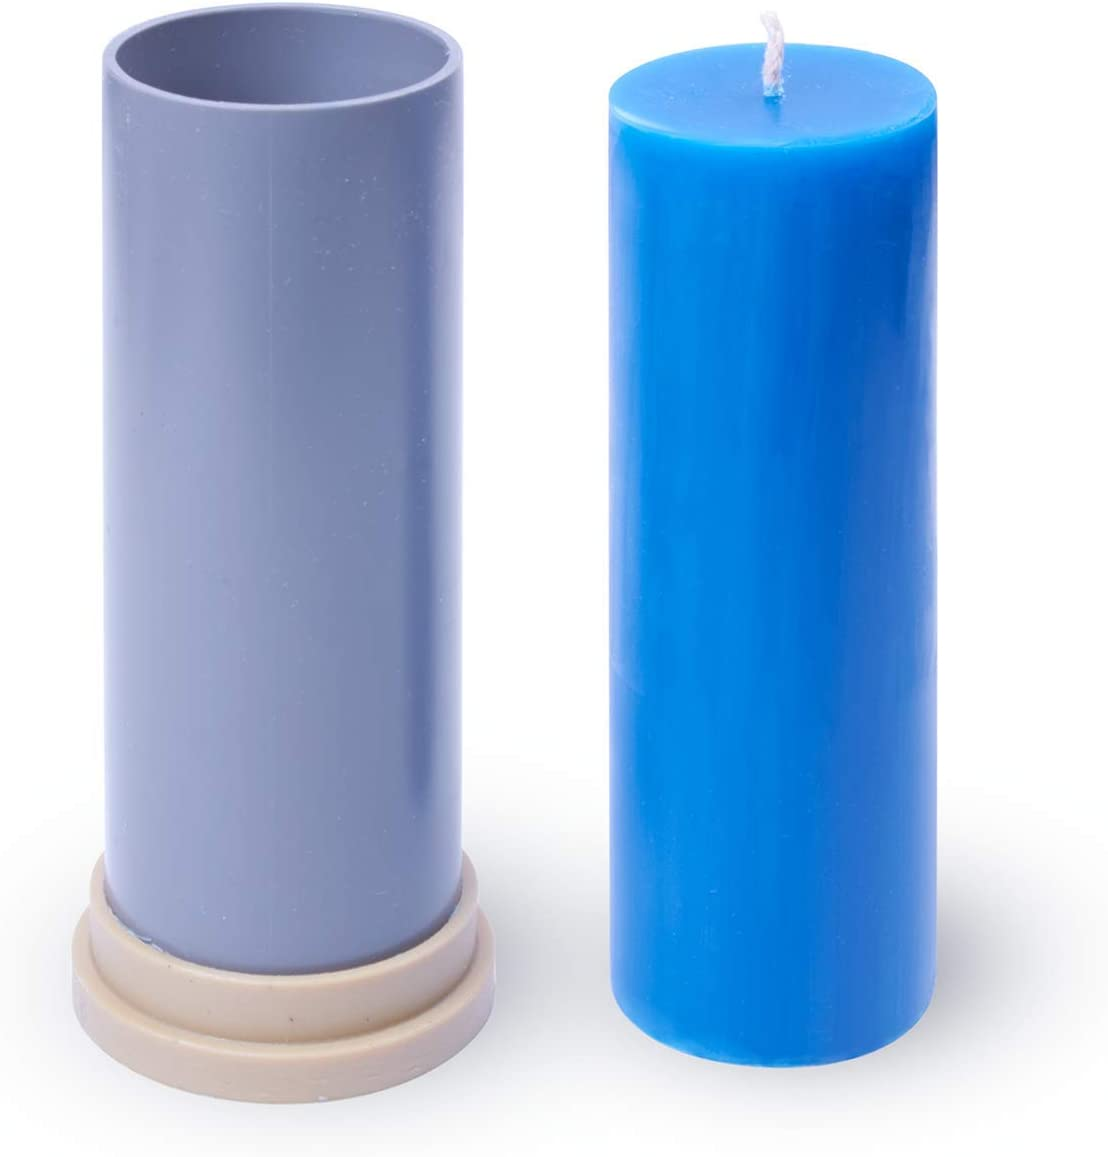 Candle Shop - 25% OFF Ð¡ylinder Mold 1.9 Width: Product 5.5 Height: in